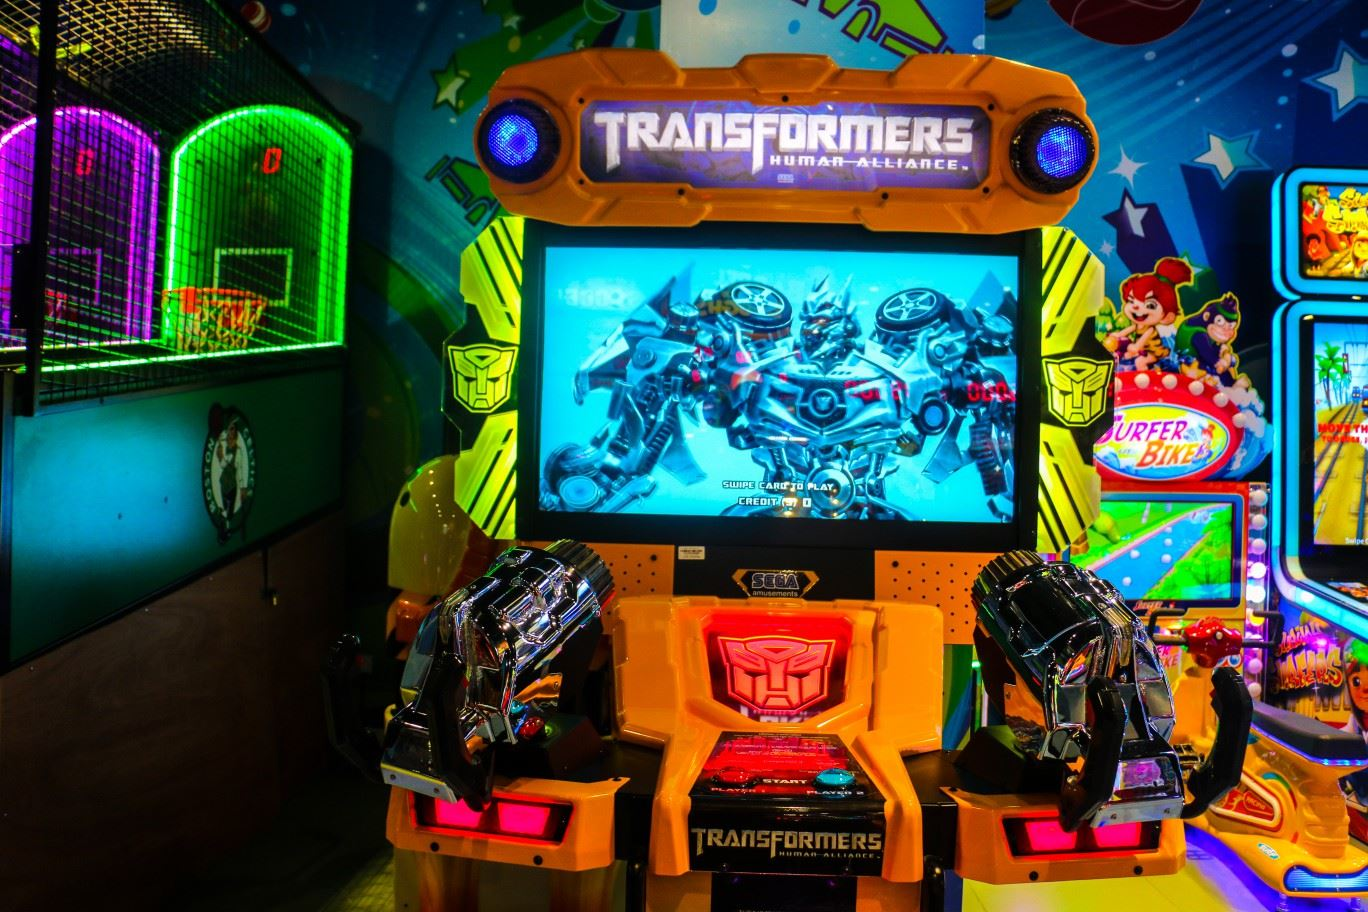 Transformers game at Magic Planet City Centre Meaisem